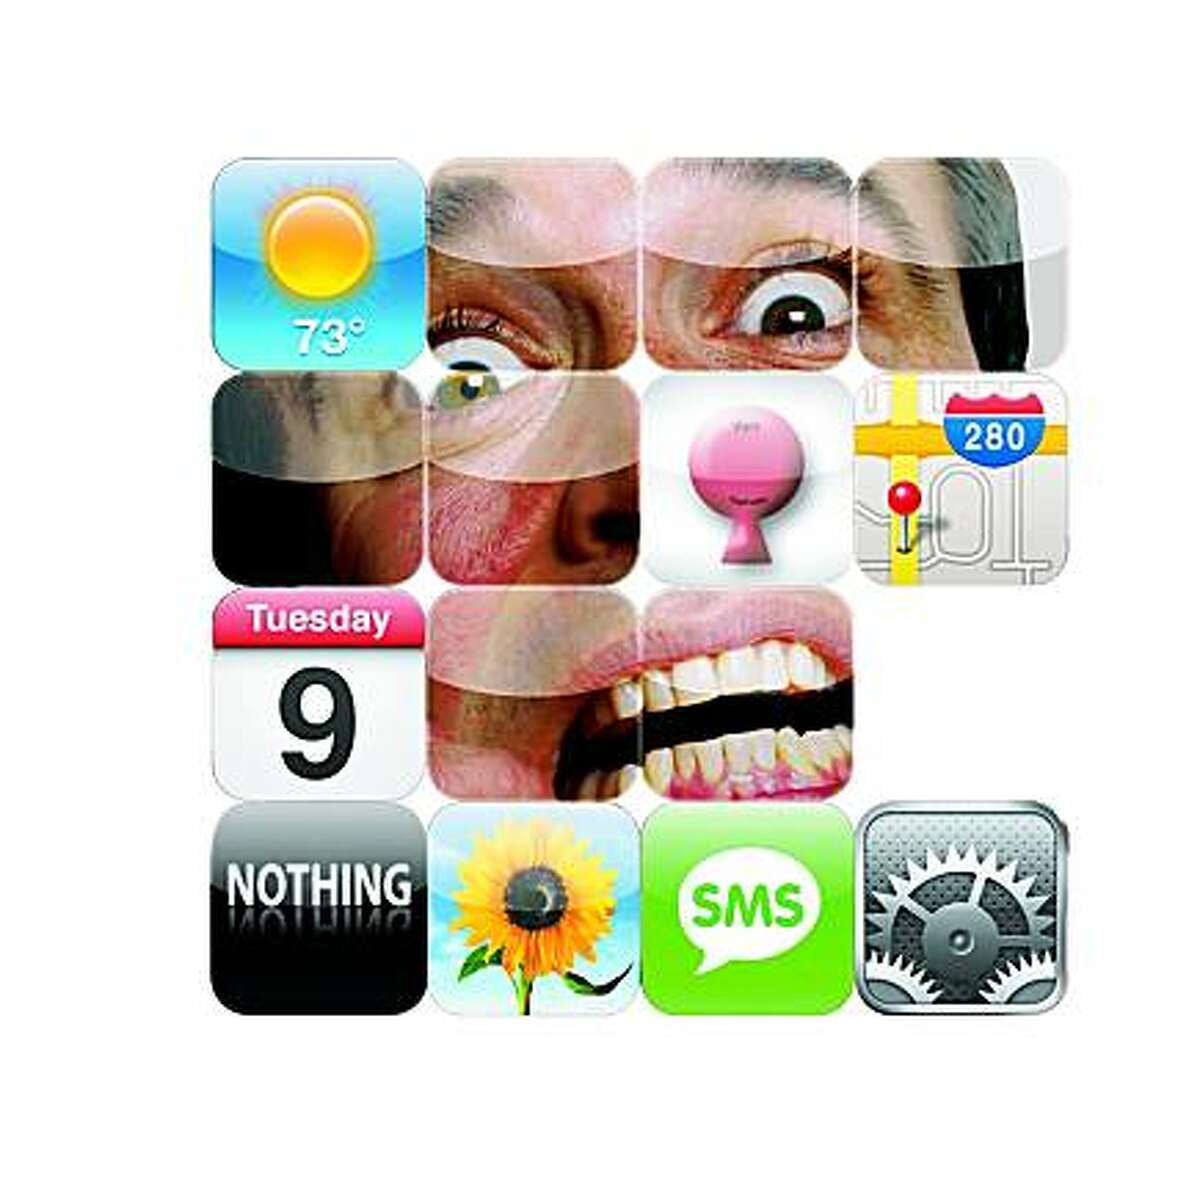 illustration by tracy cox for article on inane iphone applications